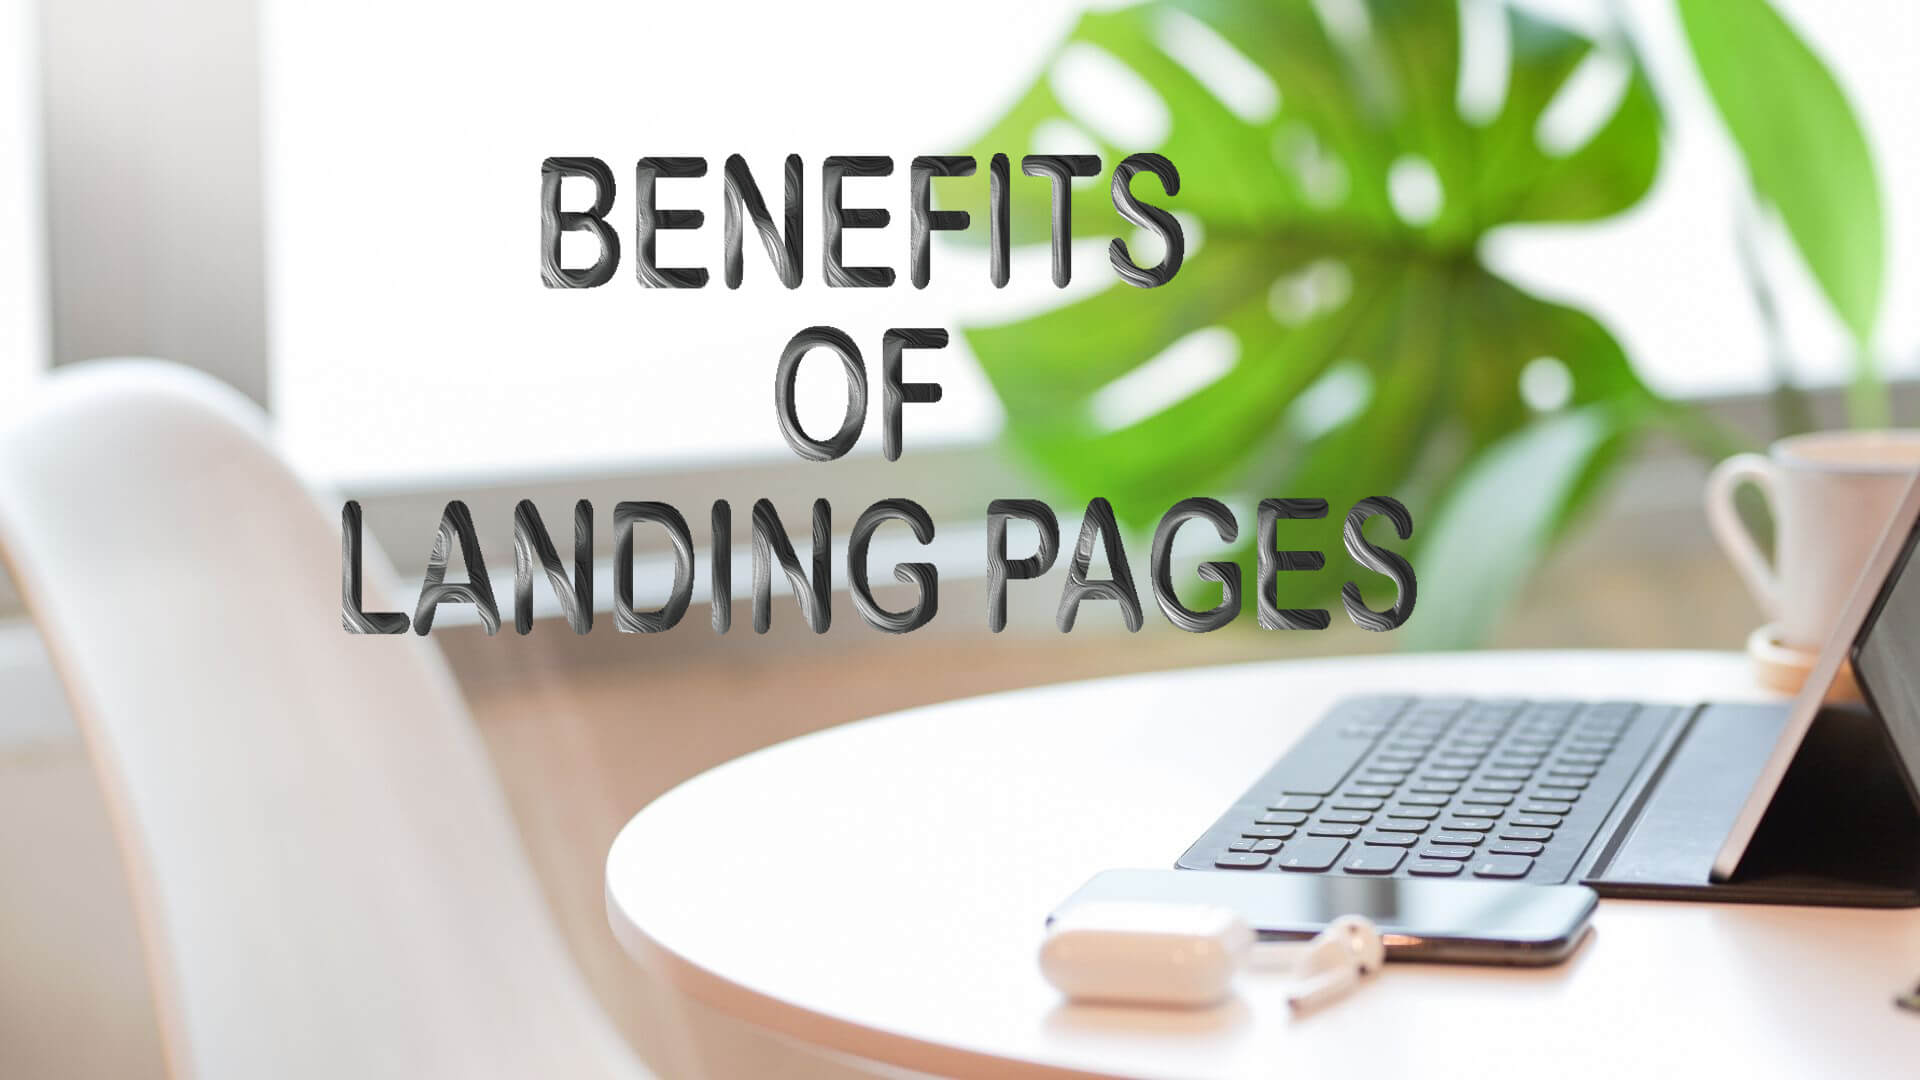 Top 5 Benefits of using Landing Pages